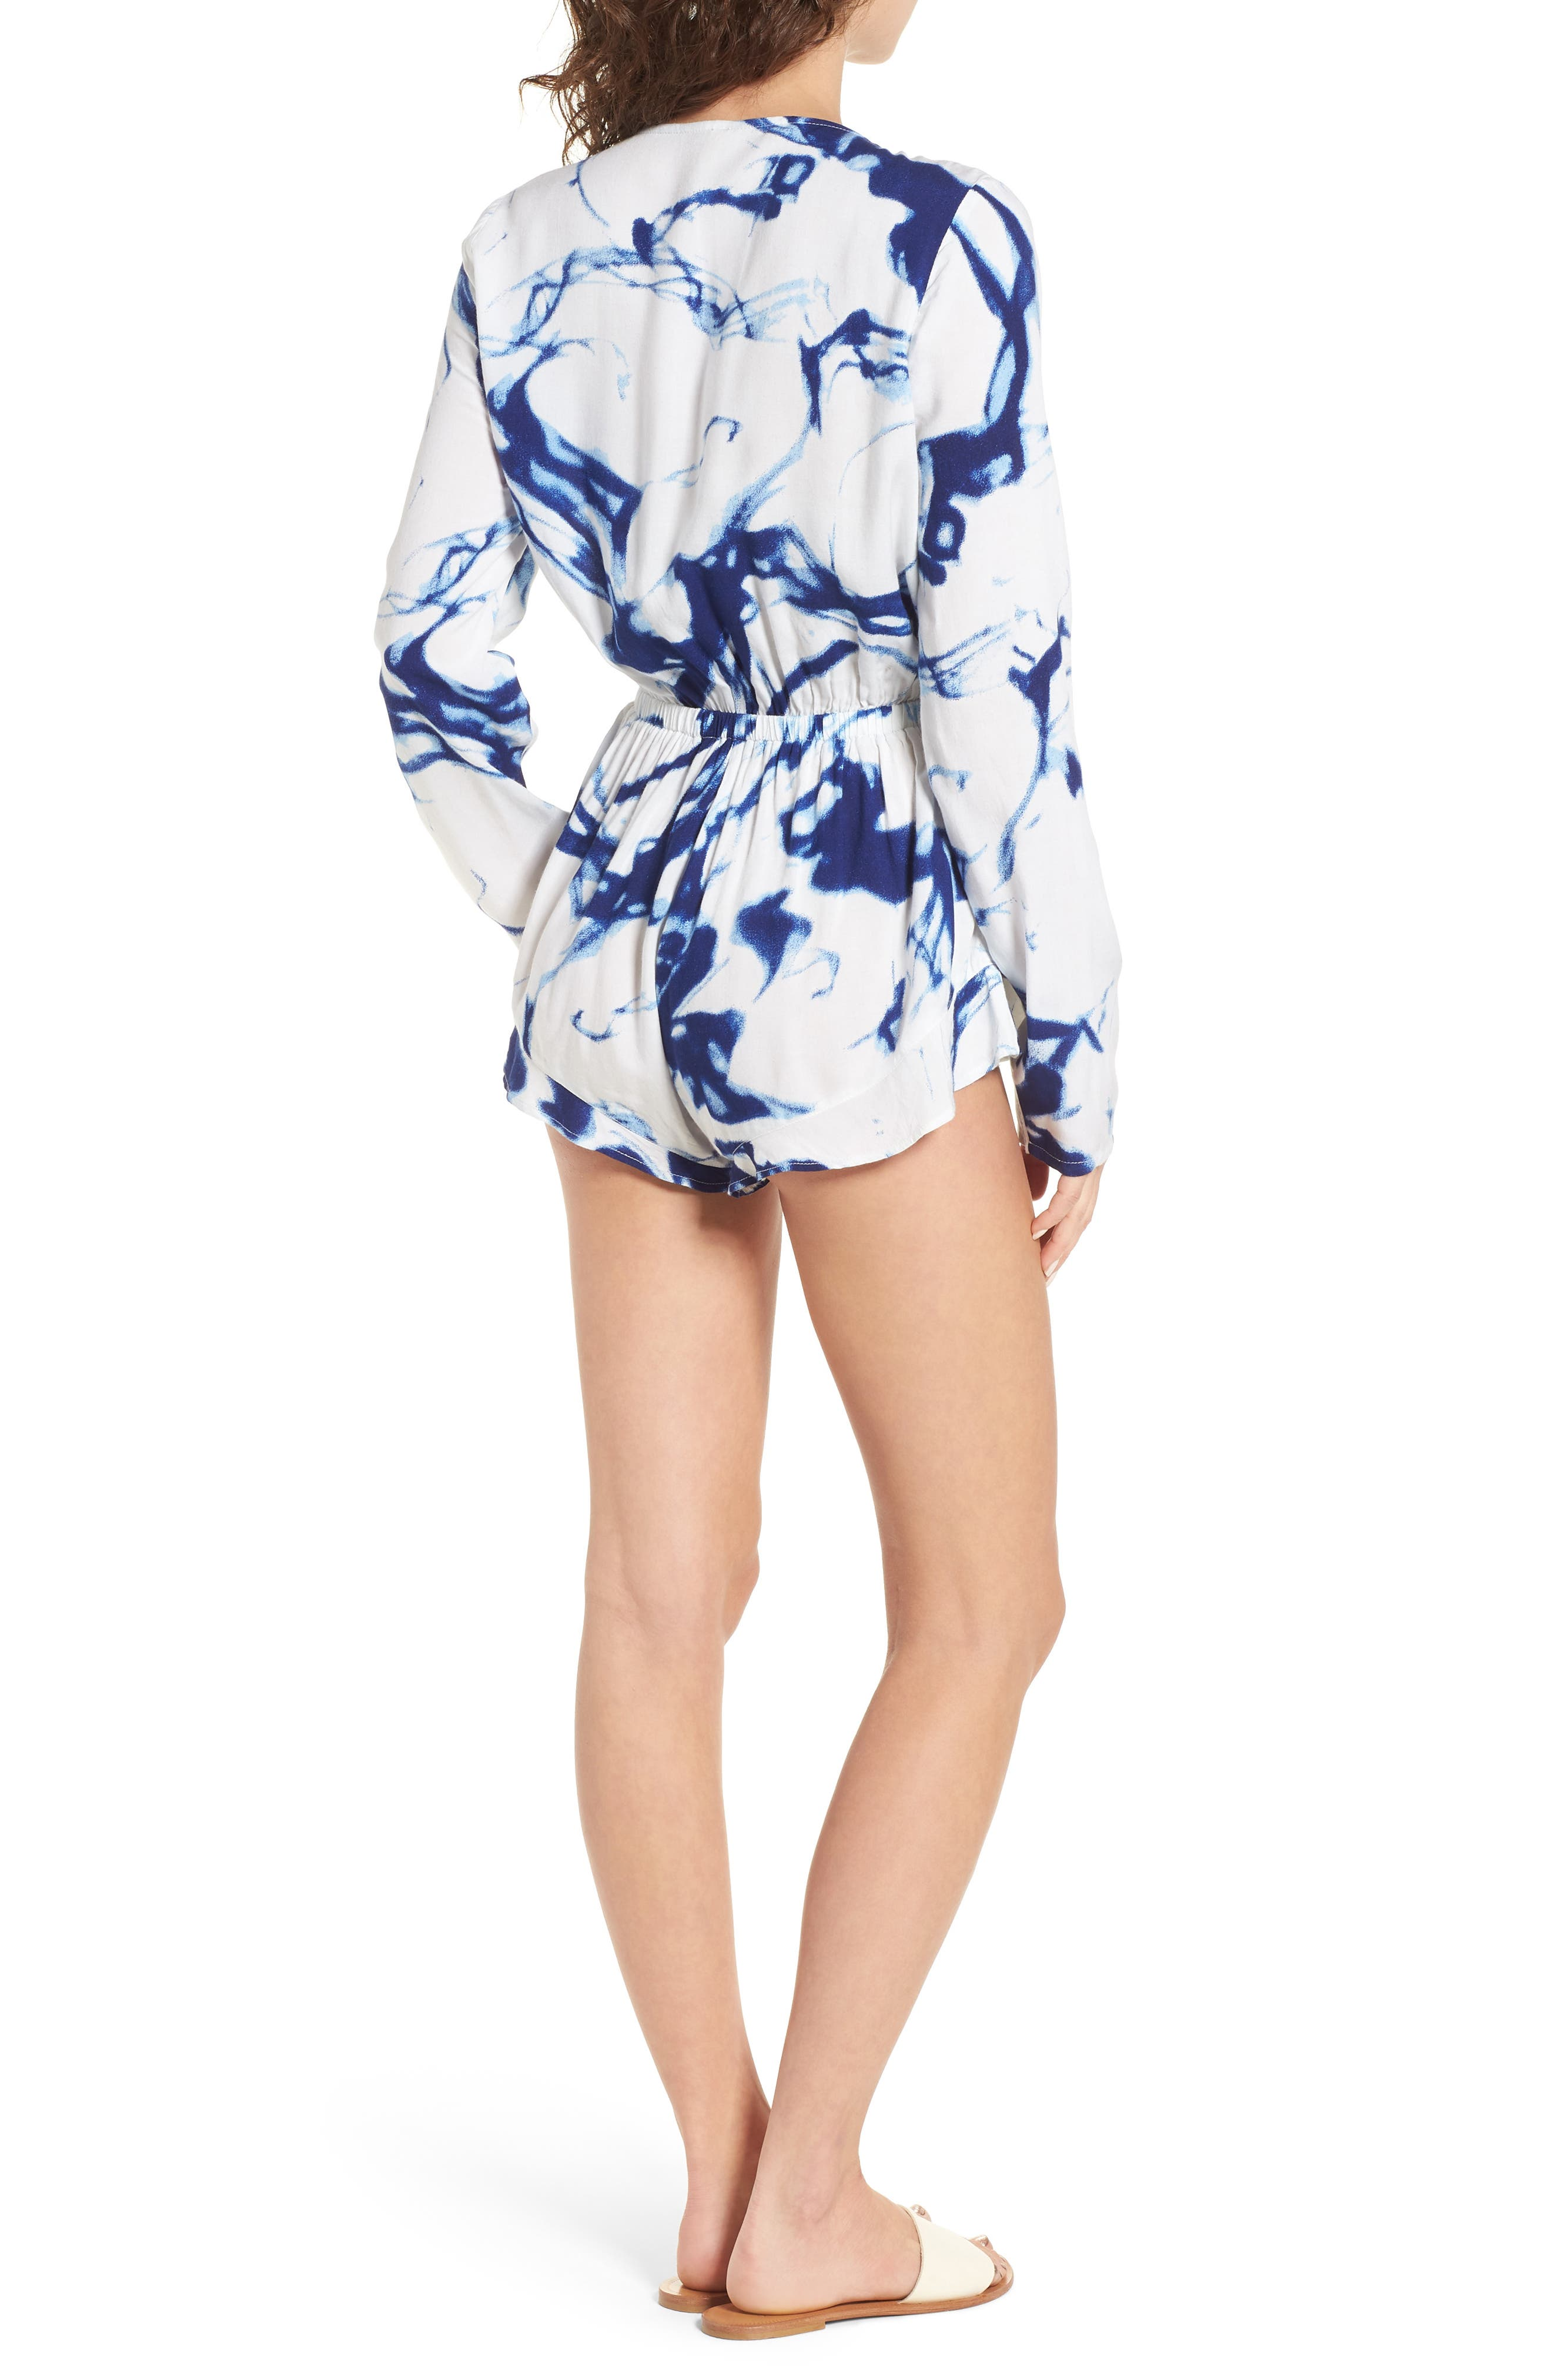 Into the Abyss Plunge Neck Romper,                             Alternate thumbnail 3, color,                             Blue/ White